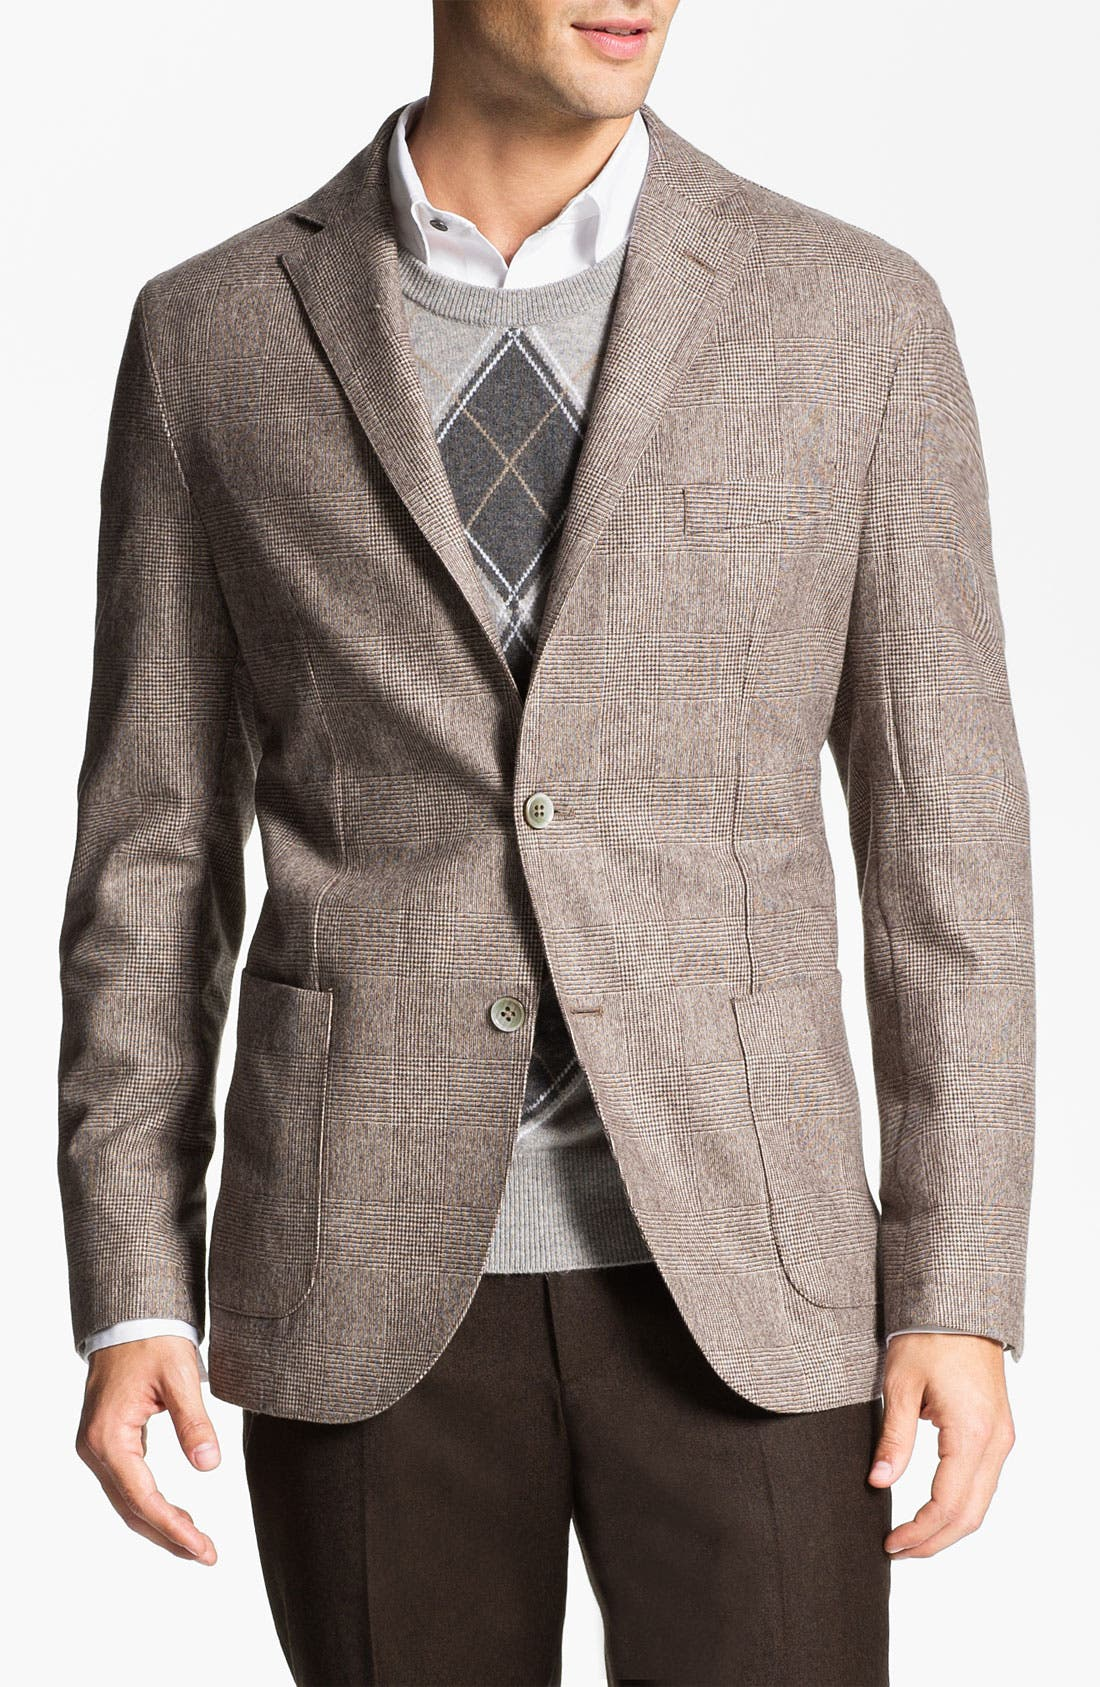 Alternate Image 1 Selected - Lubiam 'Prince of Wales' Wool Sportcoat